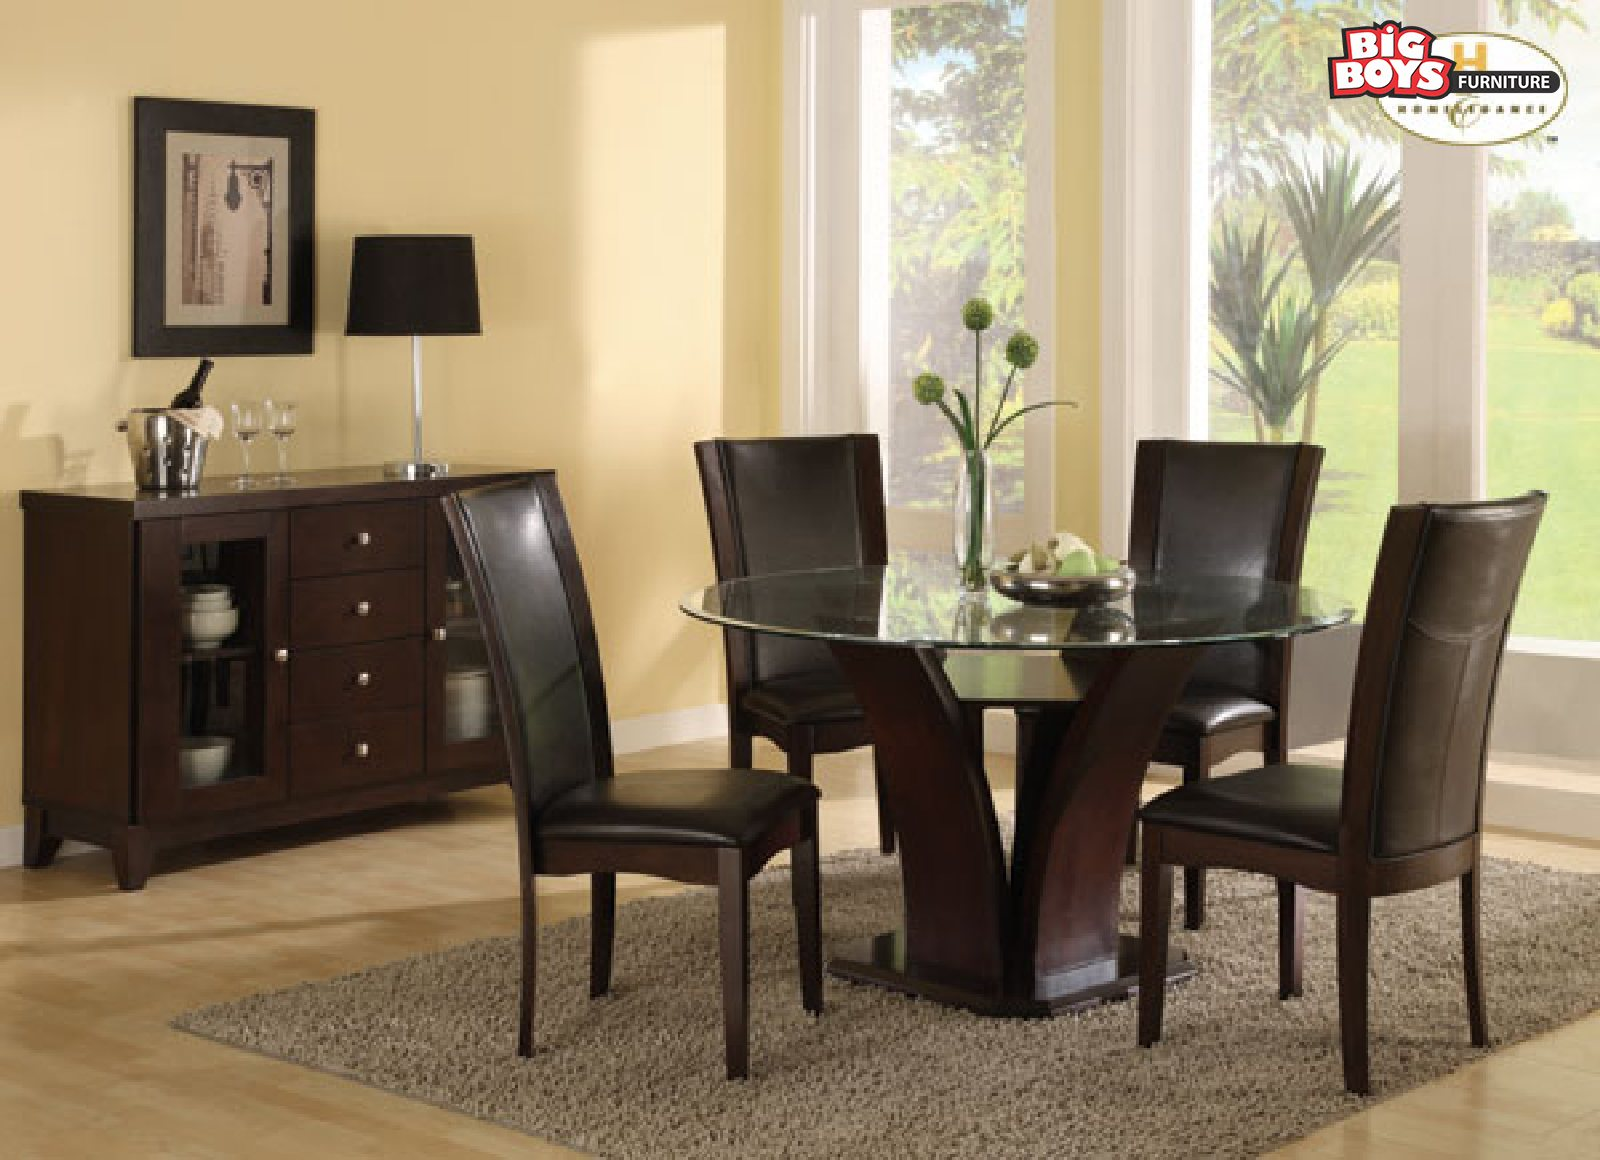 James 5-Piece Round Glass Top with Wood Dining Set with Black or White Chairs